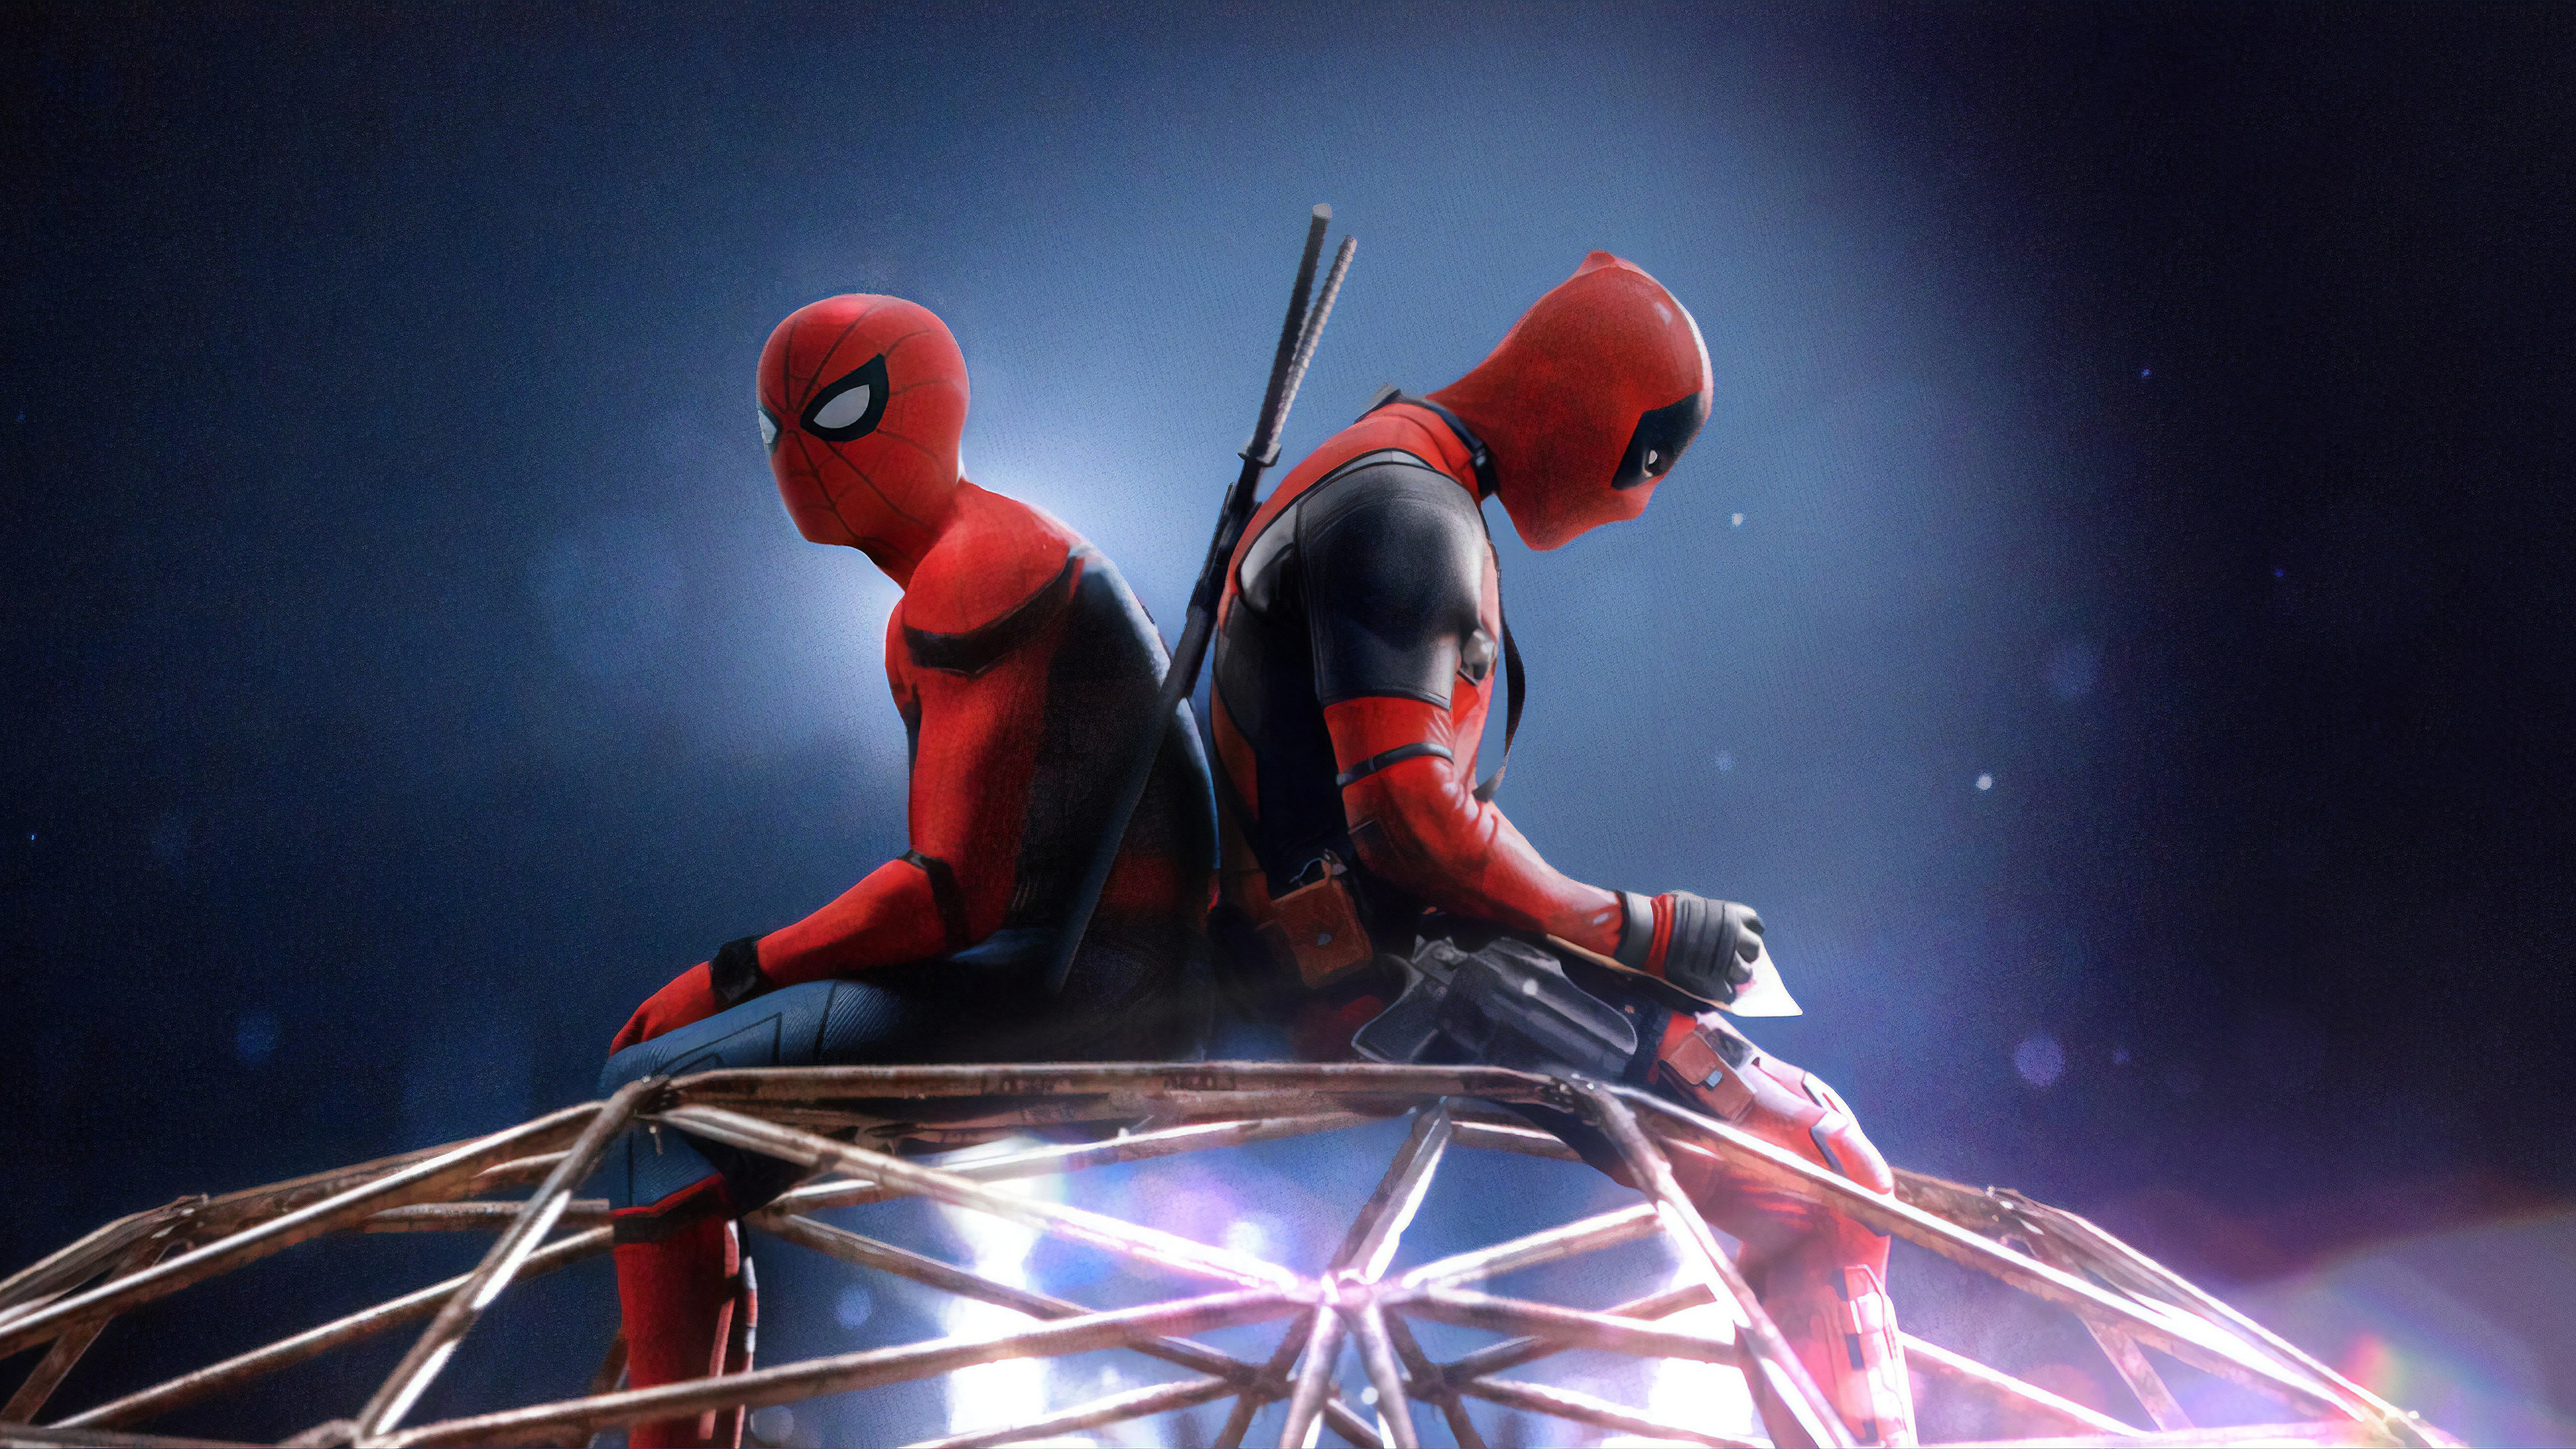 spiderman and deadpool 1560533477 - Spiderman And Deadpool - superheroes wallpapers, spiderman wallpapers, hd-wallpapers, deviantart wallpapers, deadpool wallpapers, artwork wallpapers, 4k-wallpapers